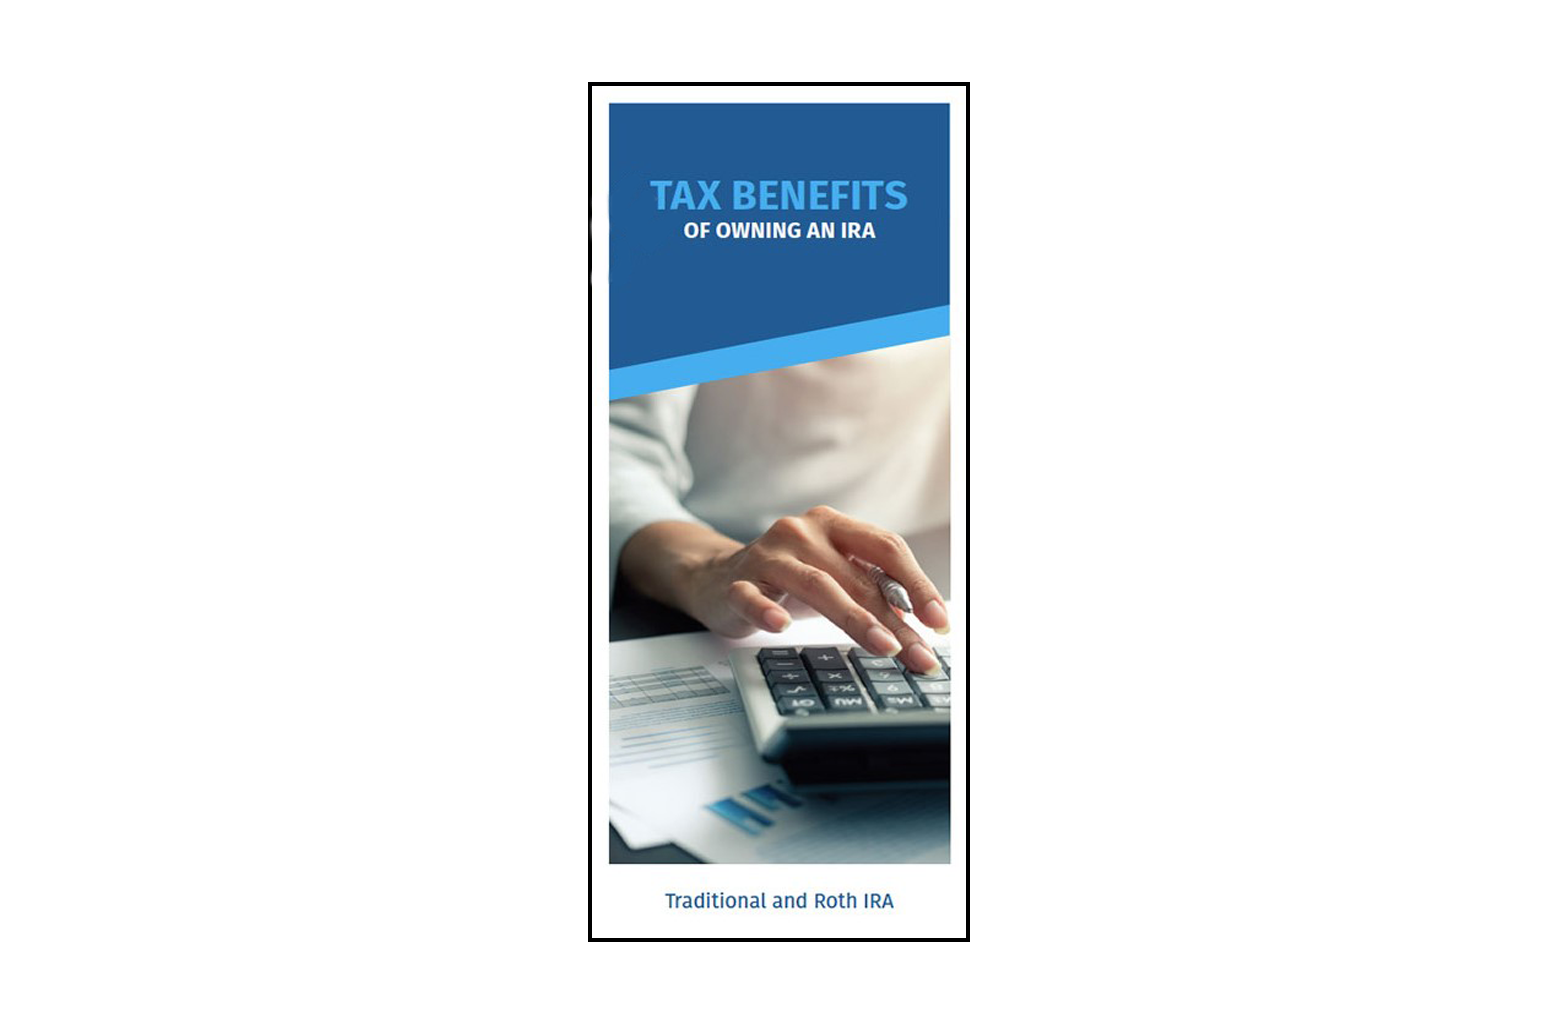 Tax Benefits of Owning an IRA Brochure